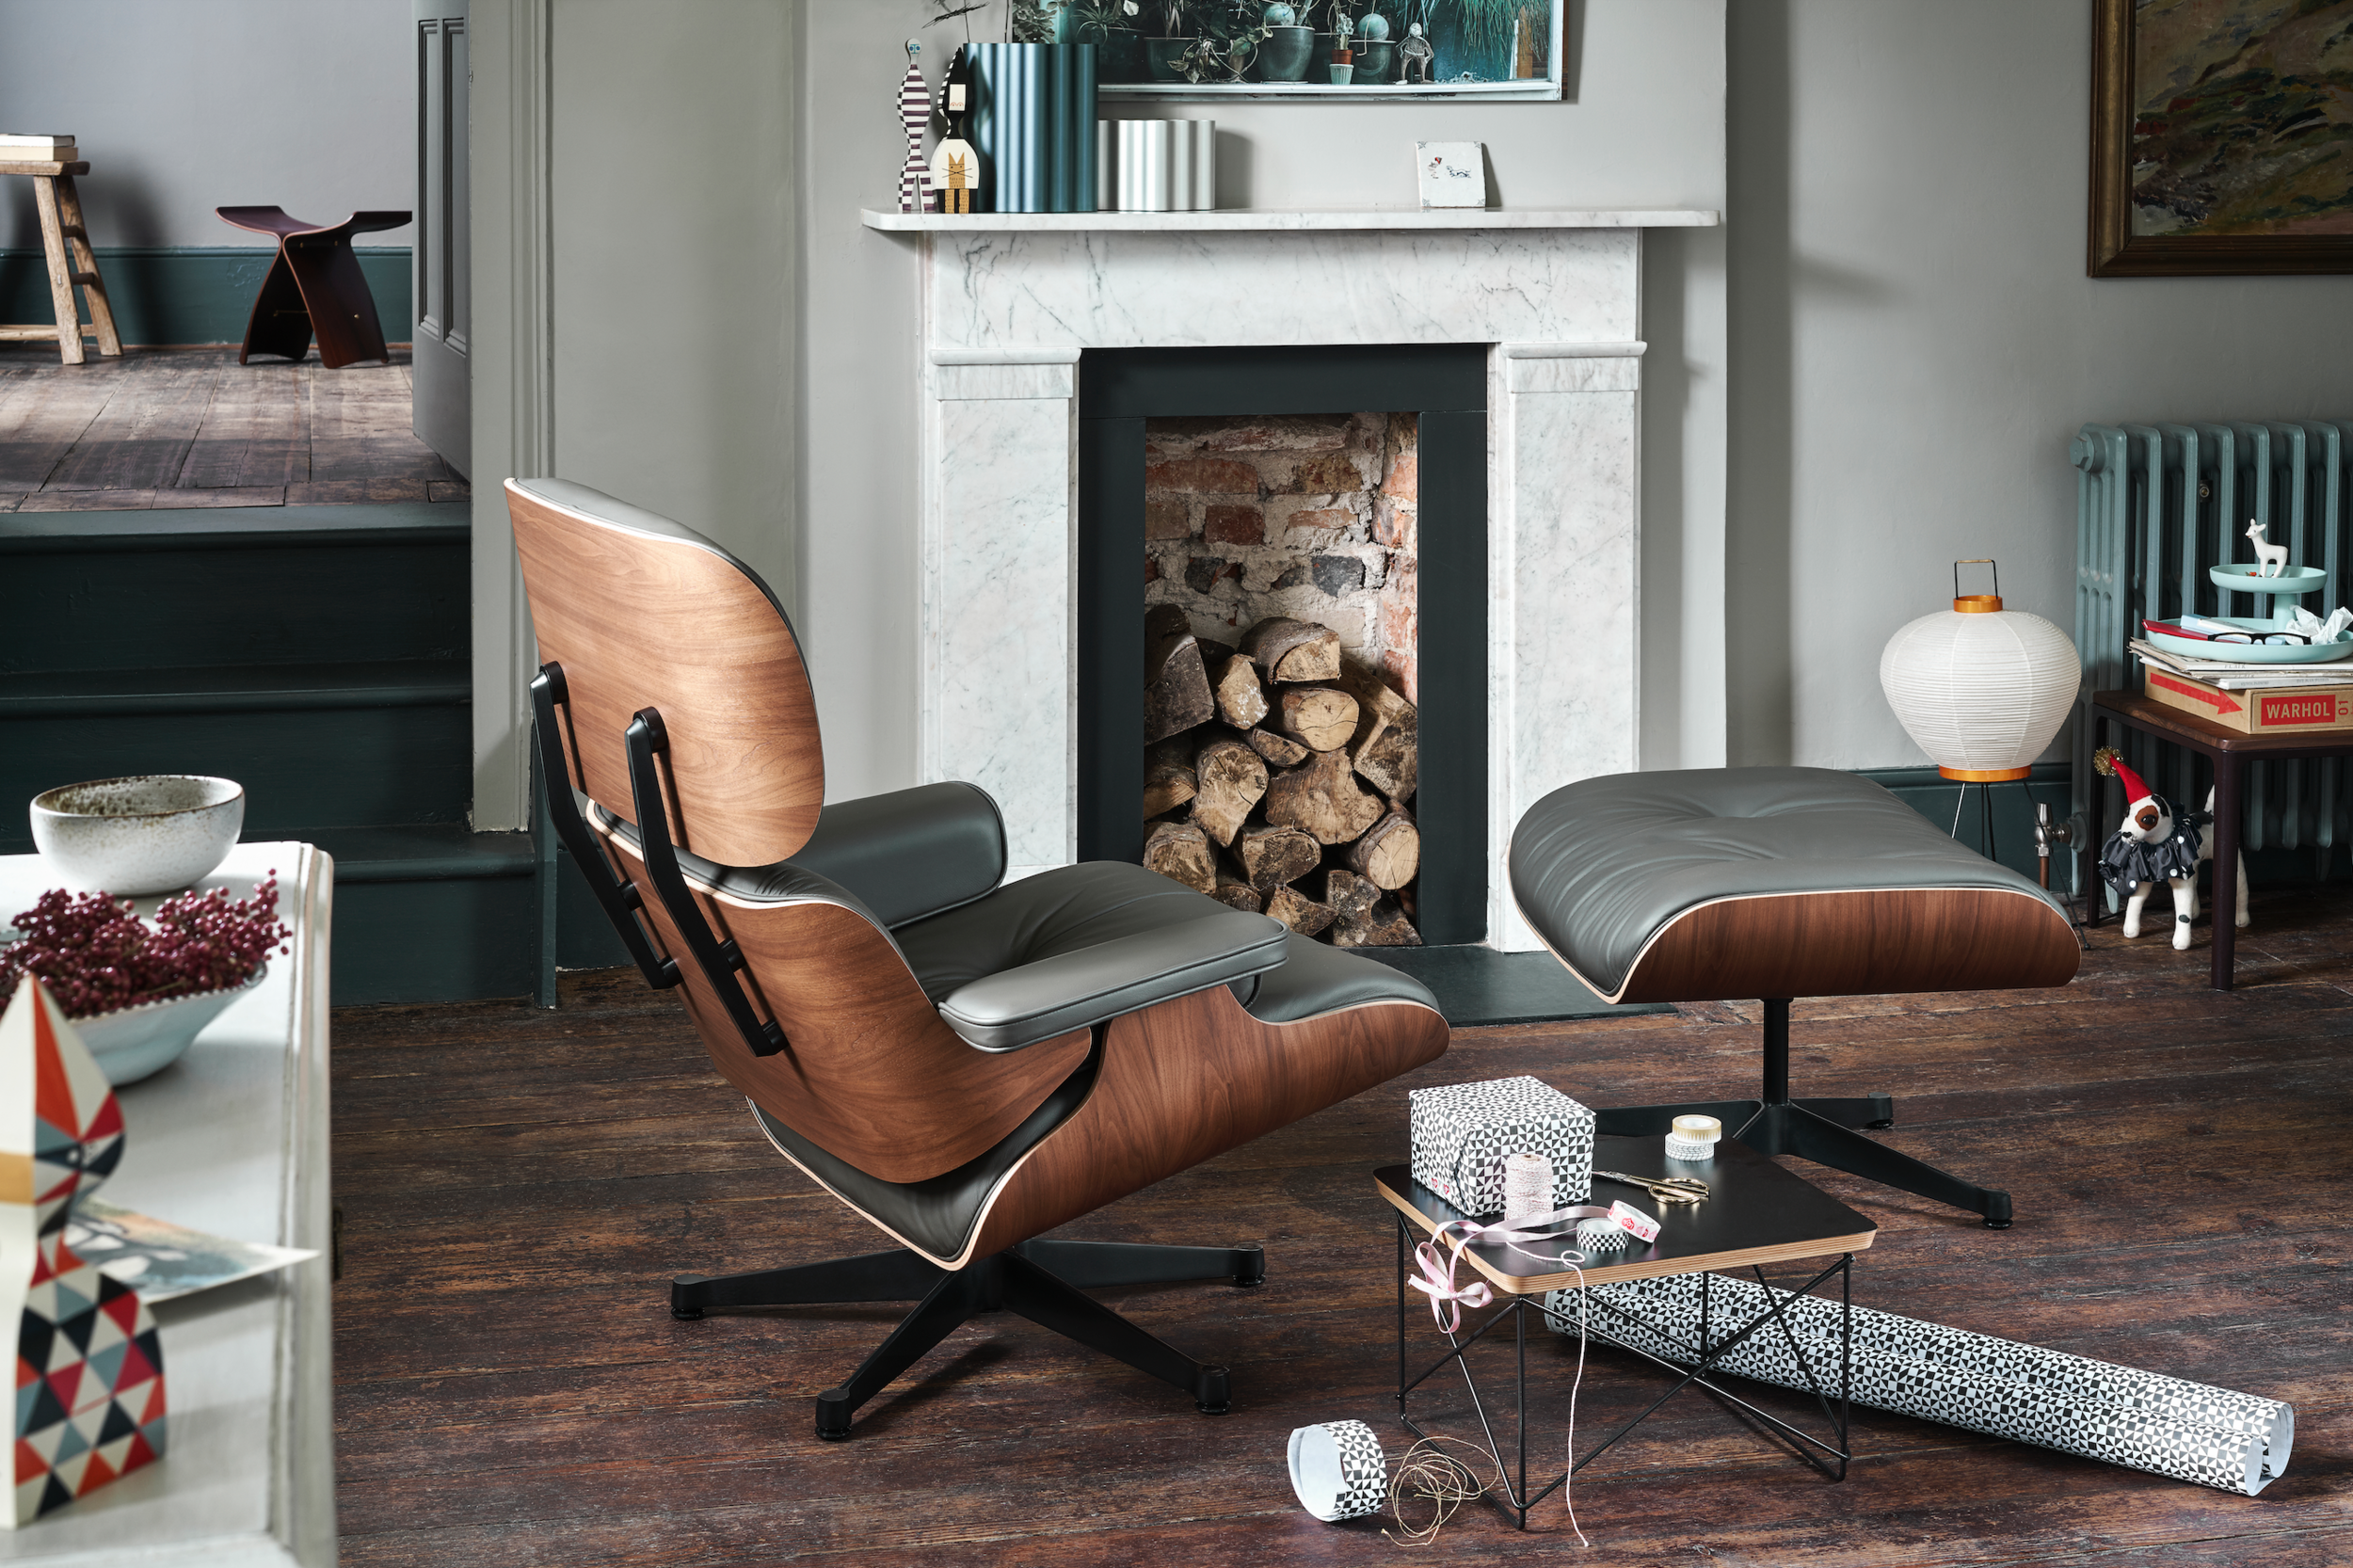 Aanbieding Design Meubels.Promotions Loncin Interieur A Beautiful Home